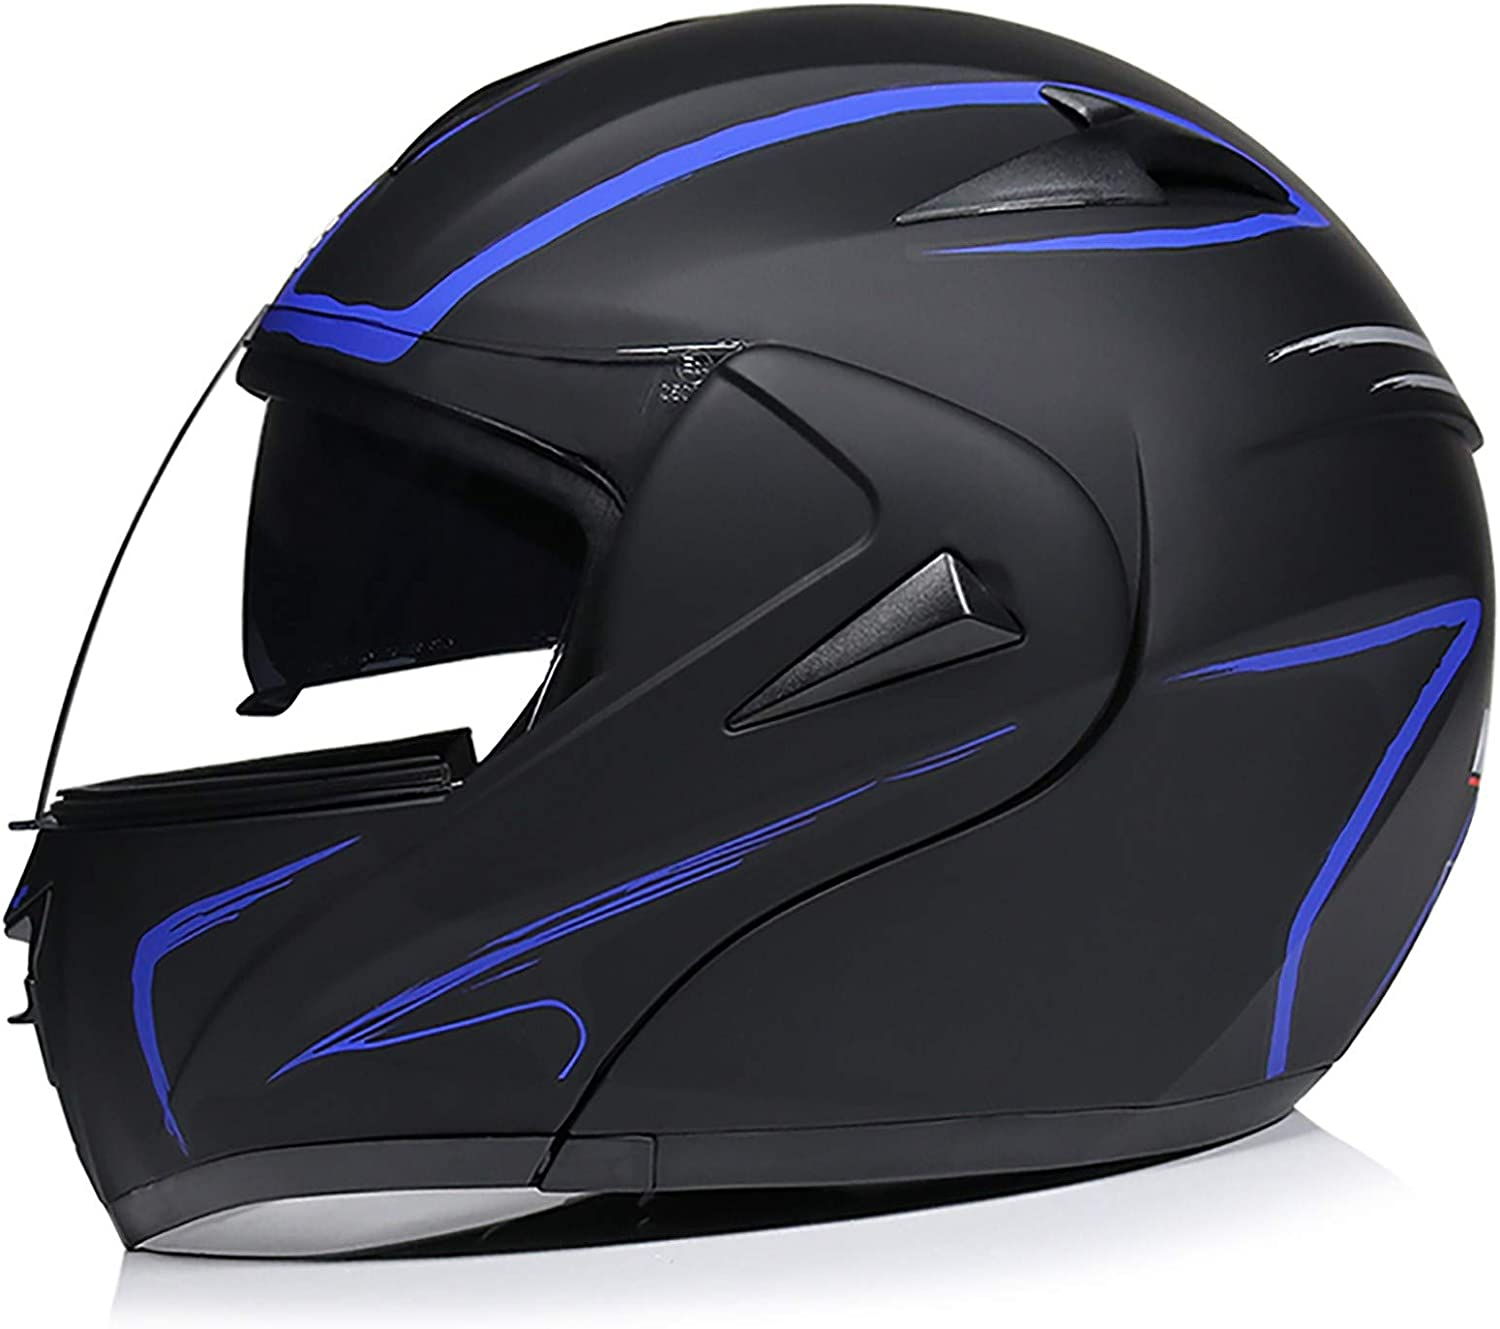 TBTBZXCV Men Women Motorcycle Limited time cheap sale Helmet Flip Face Up Full Outlet ☆ Free Shipping Modular